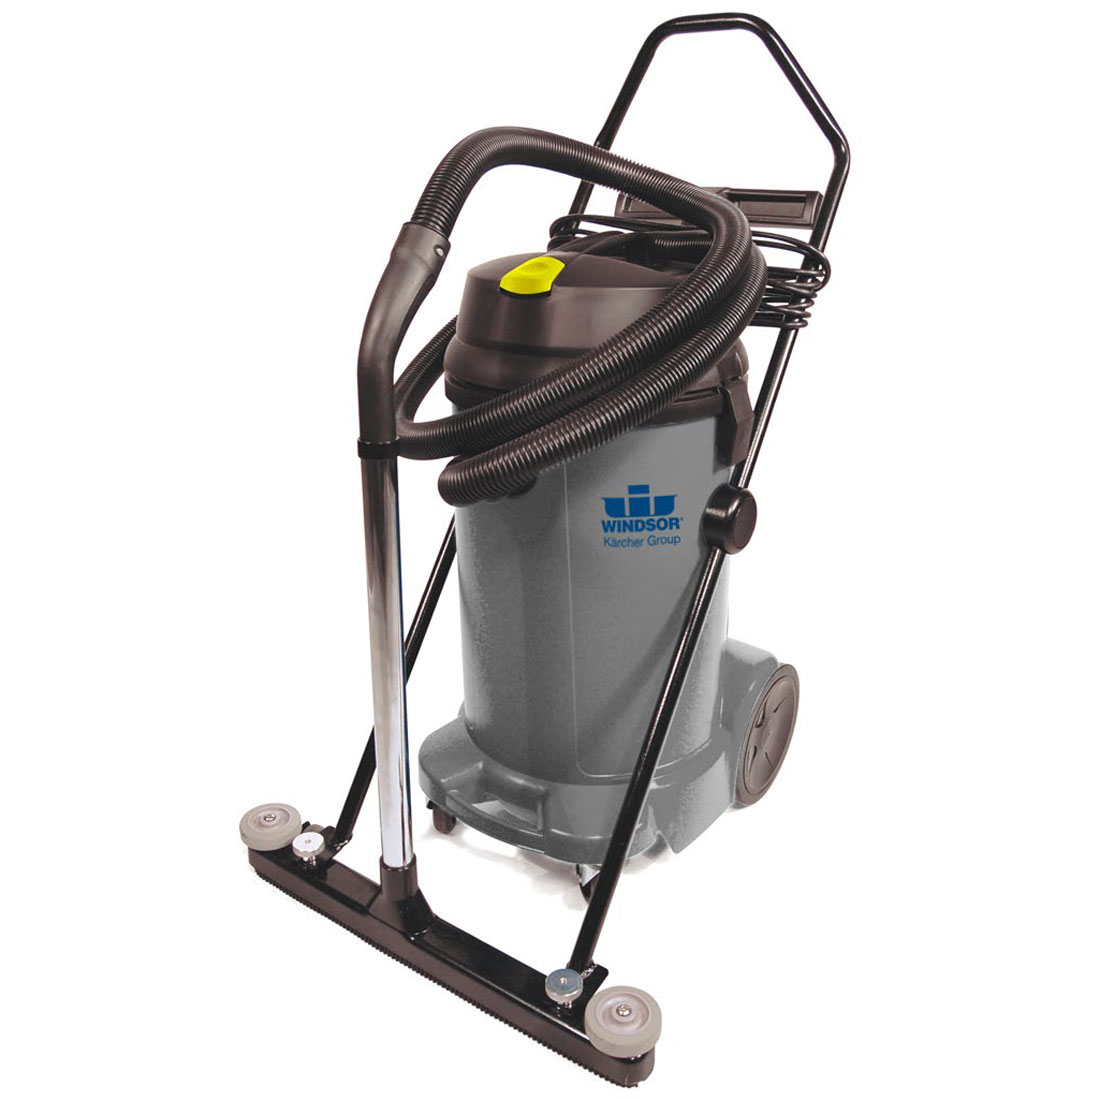 Windsor Recover 12 Gal Wet Dry Shop Vacuum 9.840-844.0 With Front Mount Squeegee FREE Shipping 120 Volts